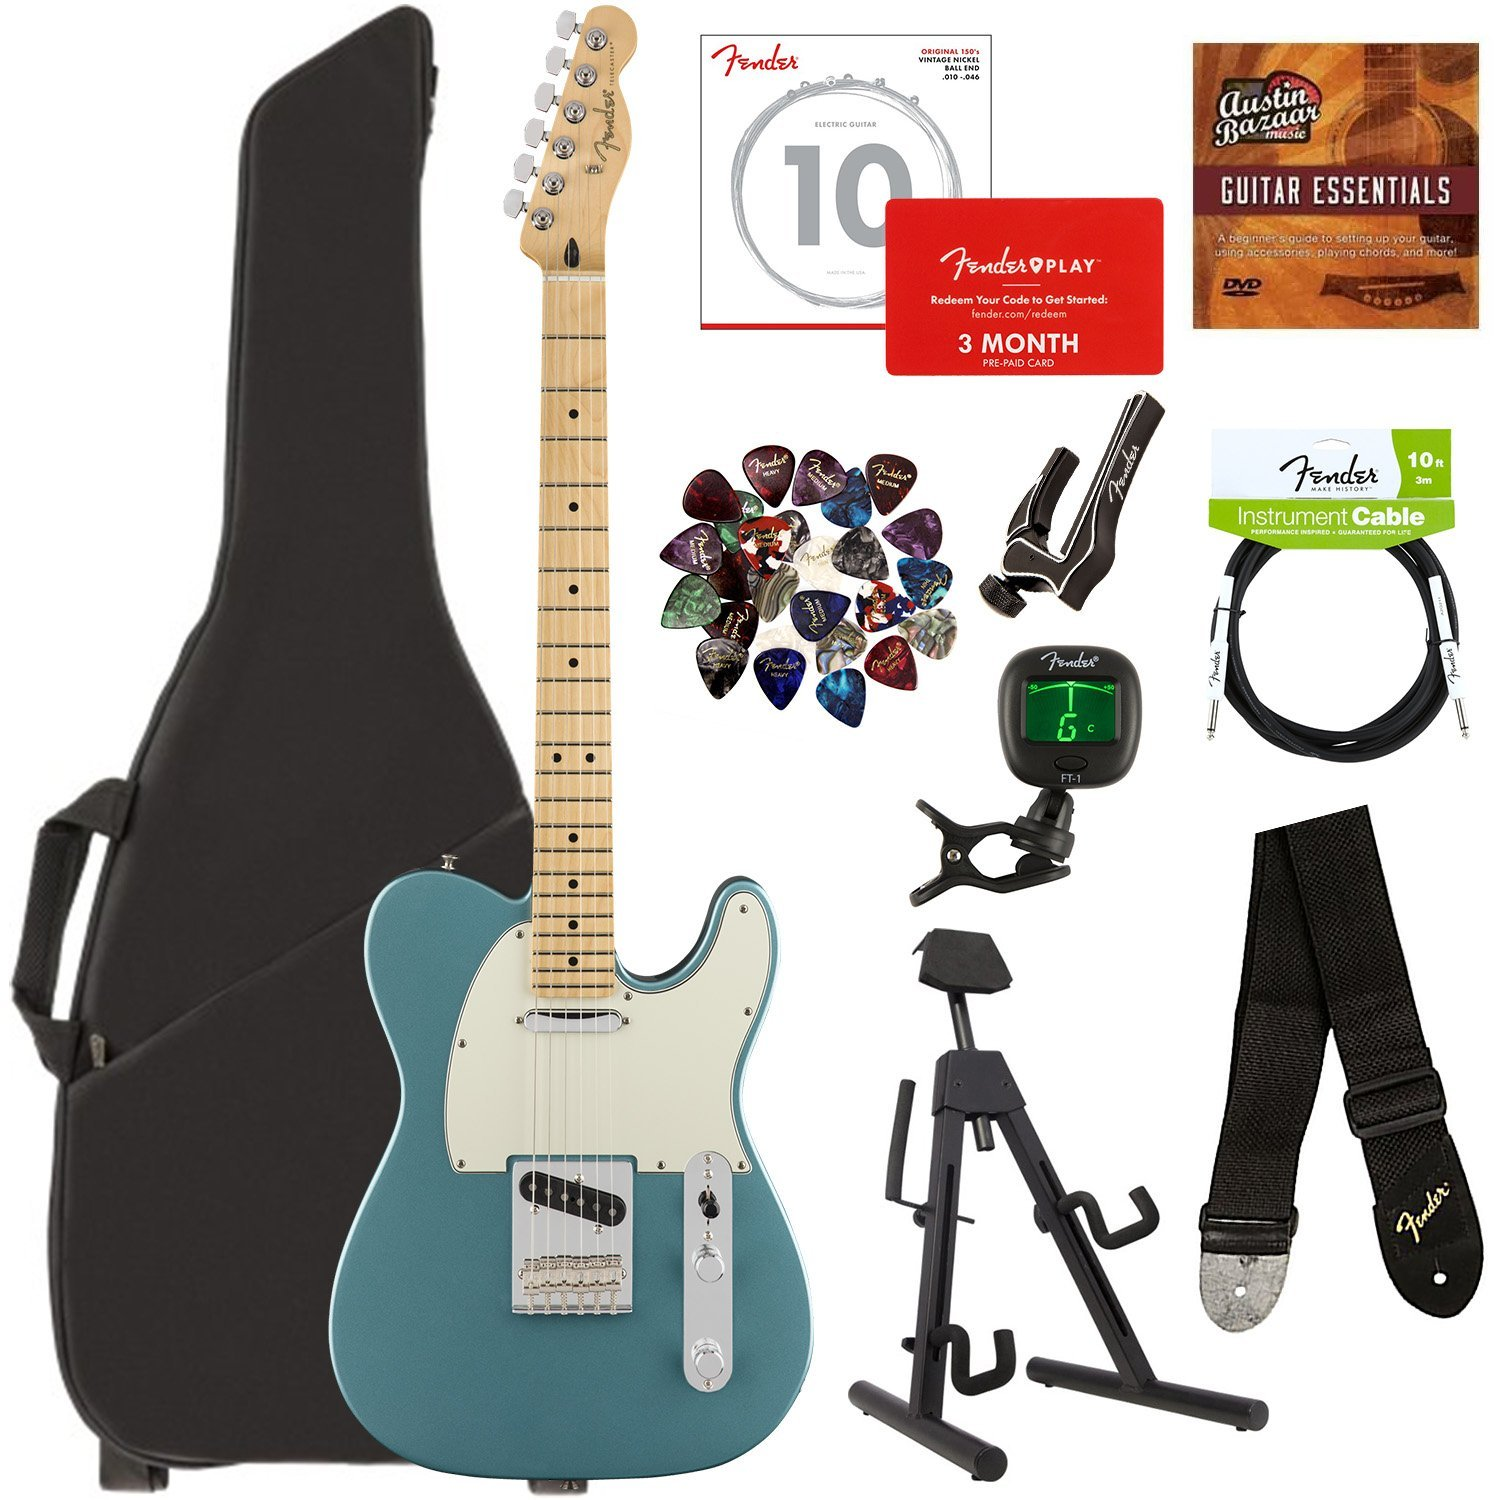 Fender-Player-Telecaster-Maple--Tidepool-Bundle-with-Gig-Bag-Stand-Cable-Tuner-Strap-Strings-Picks-Capo-Fender-Play-Online-Lessons-and-Austin-Bazaar-Instructional-DVD